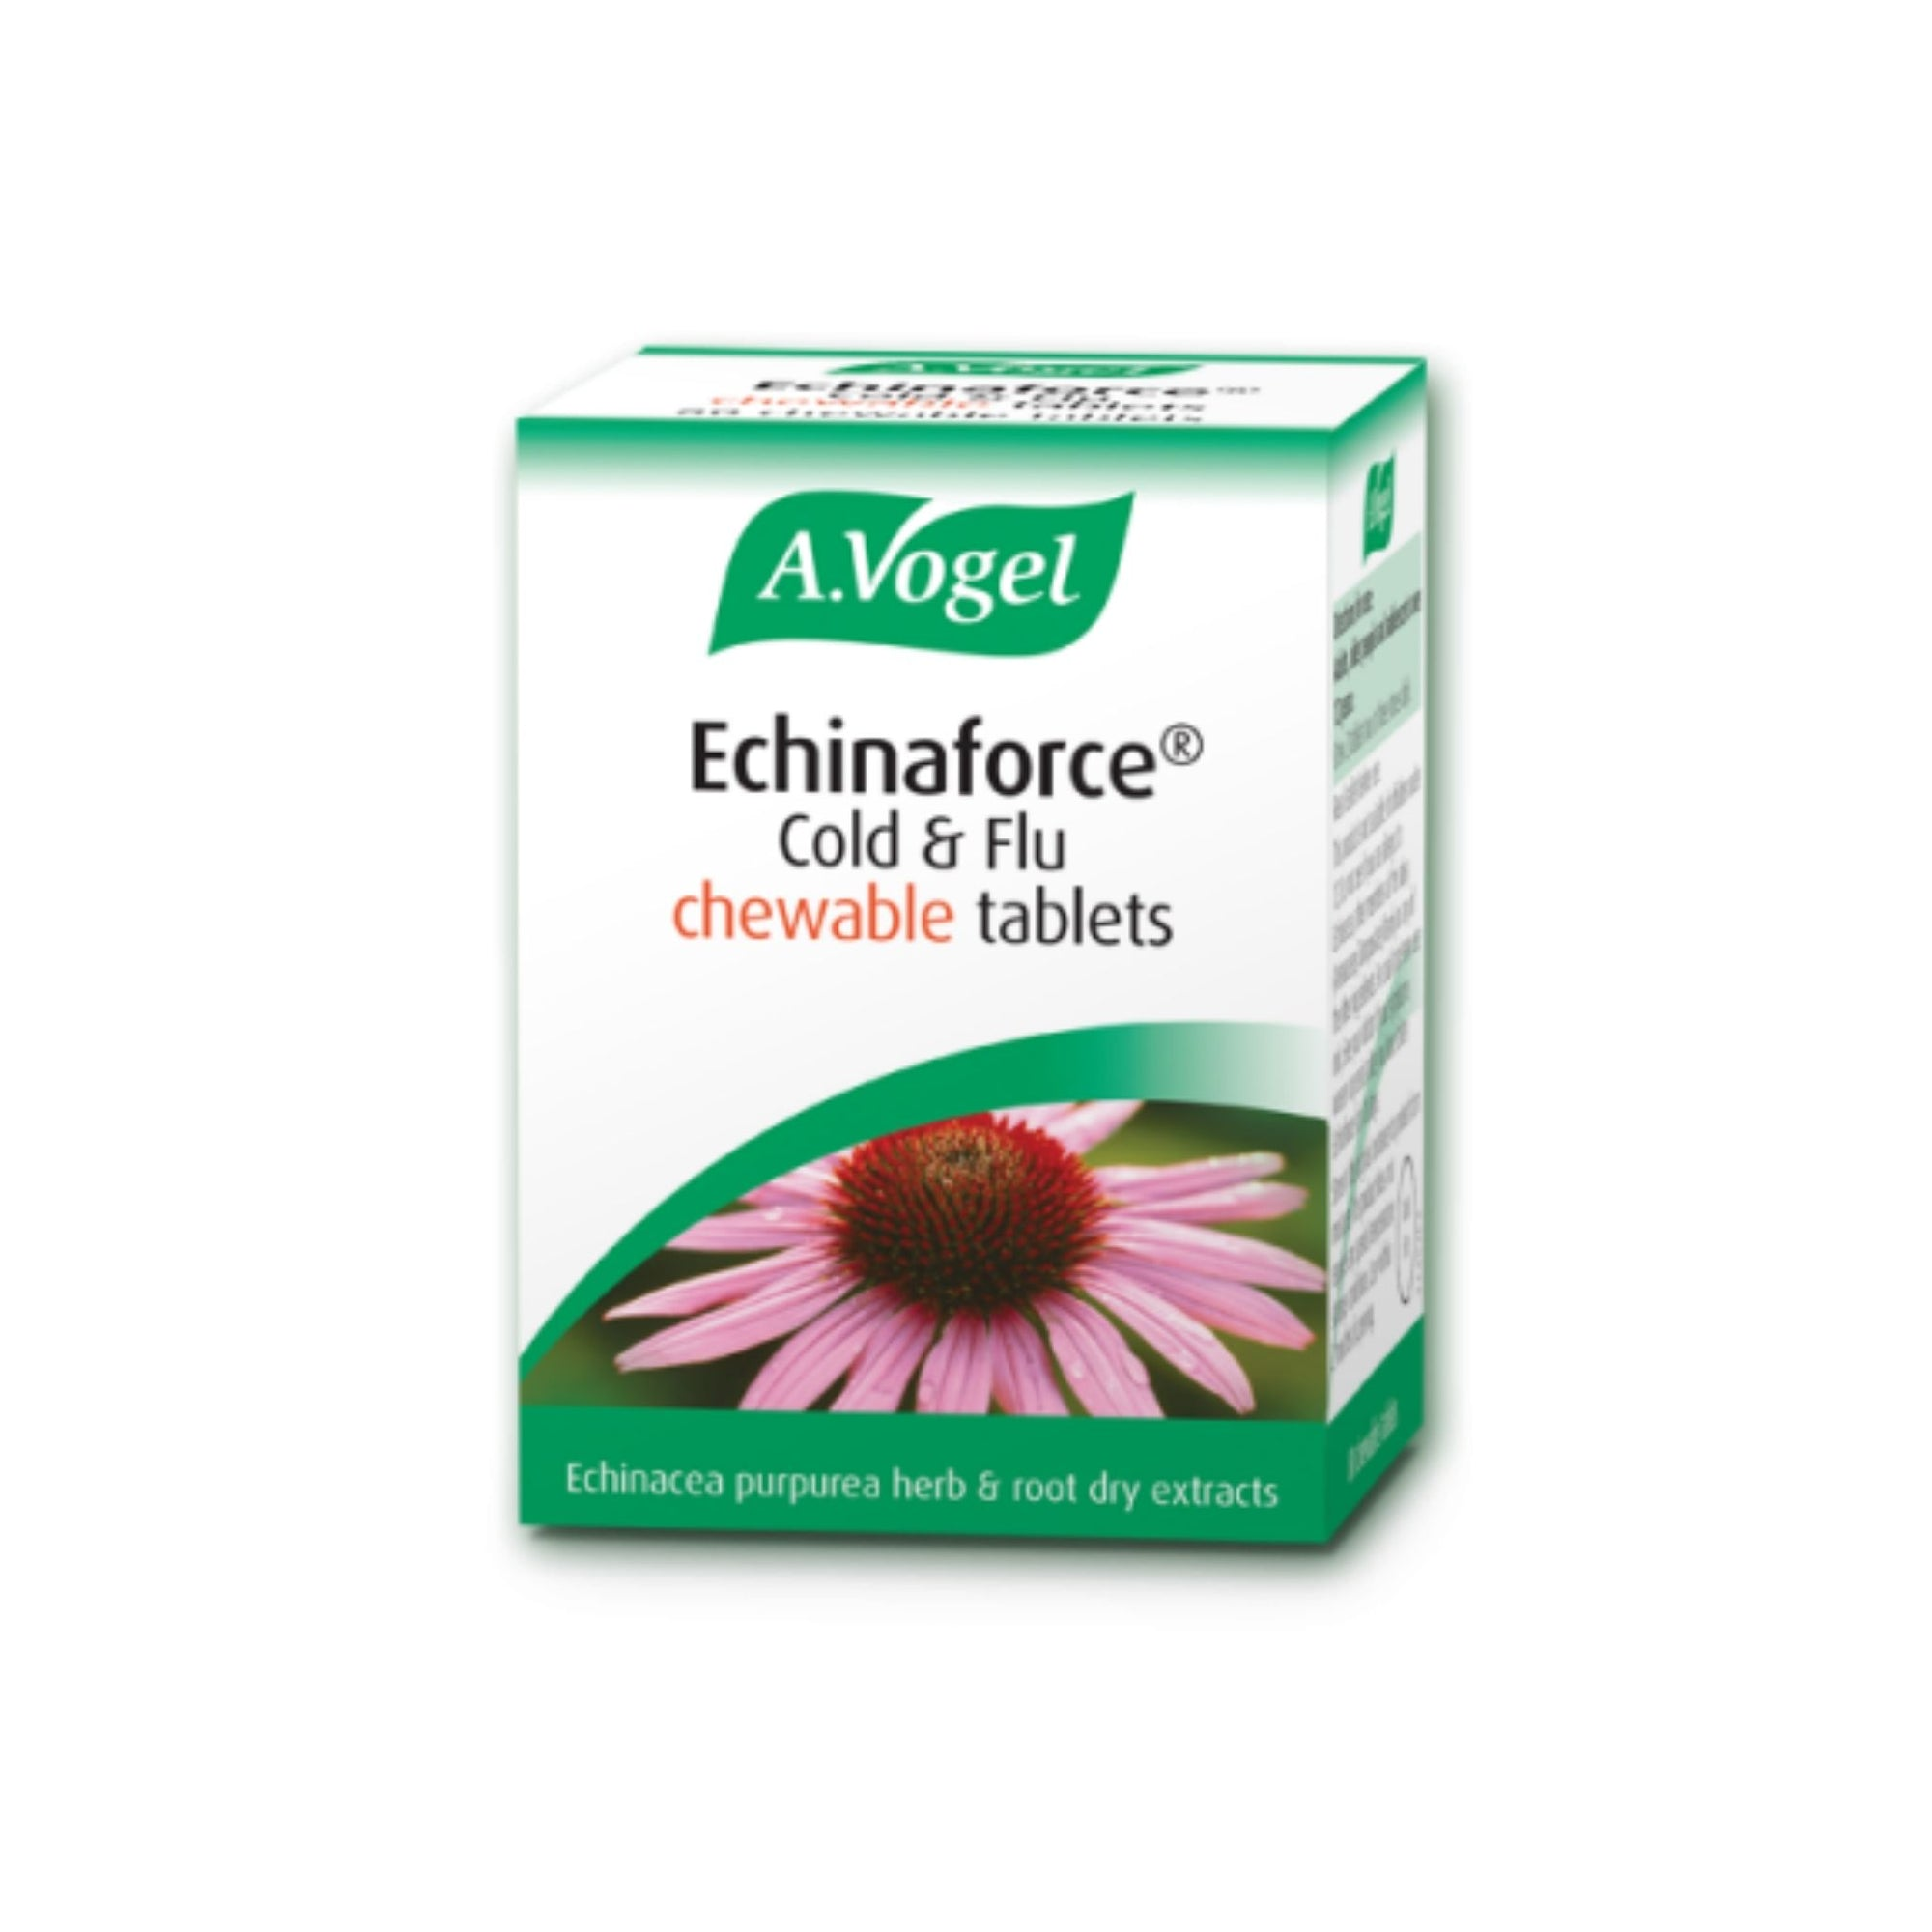 A. Vogel Echinacea Chewable Cold & Flu 40's